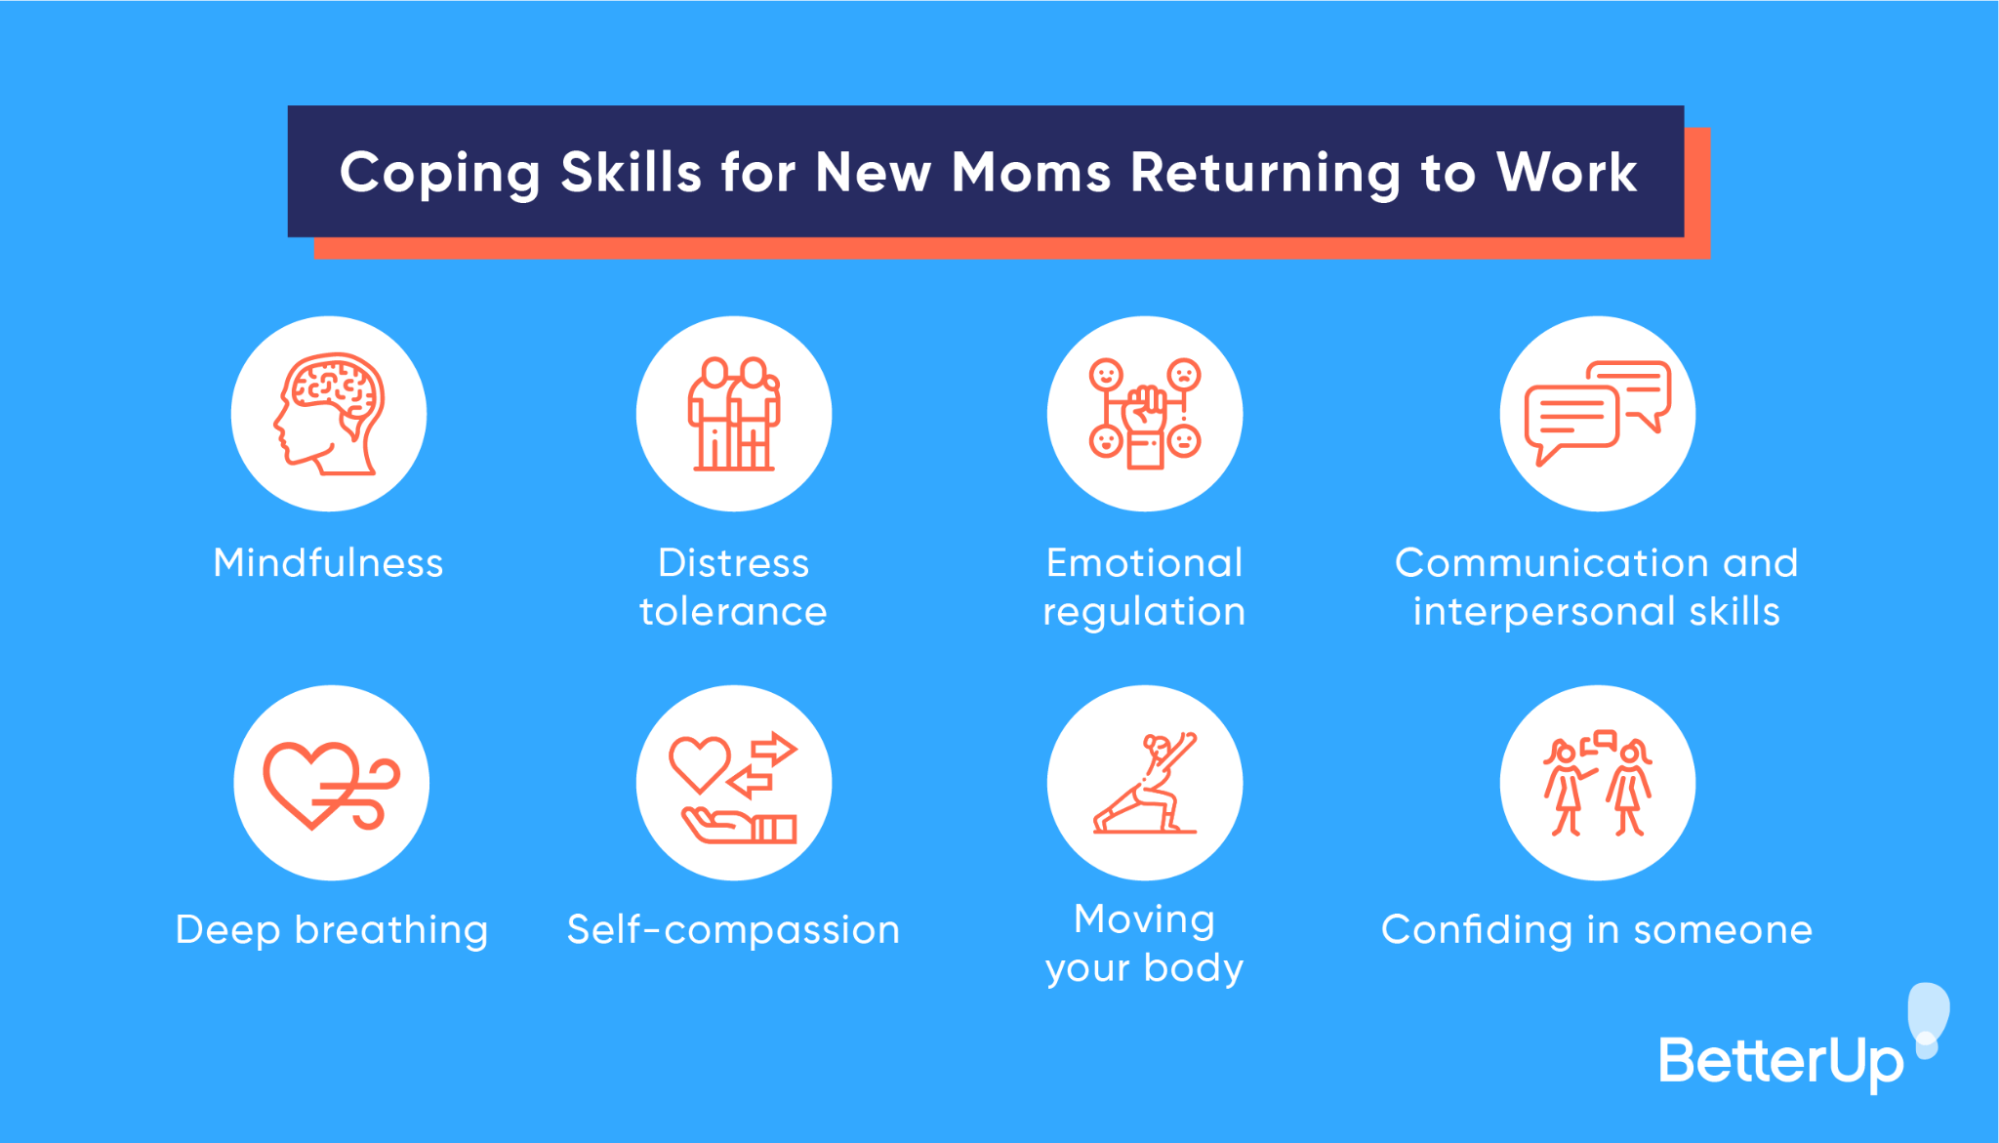 coping skills for new moms returning to work